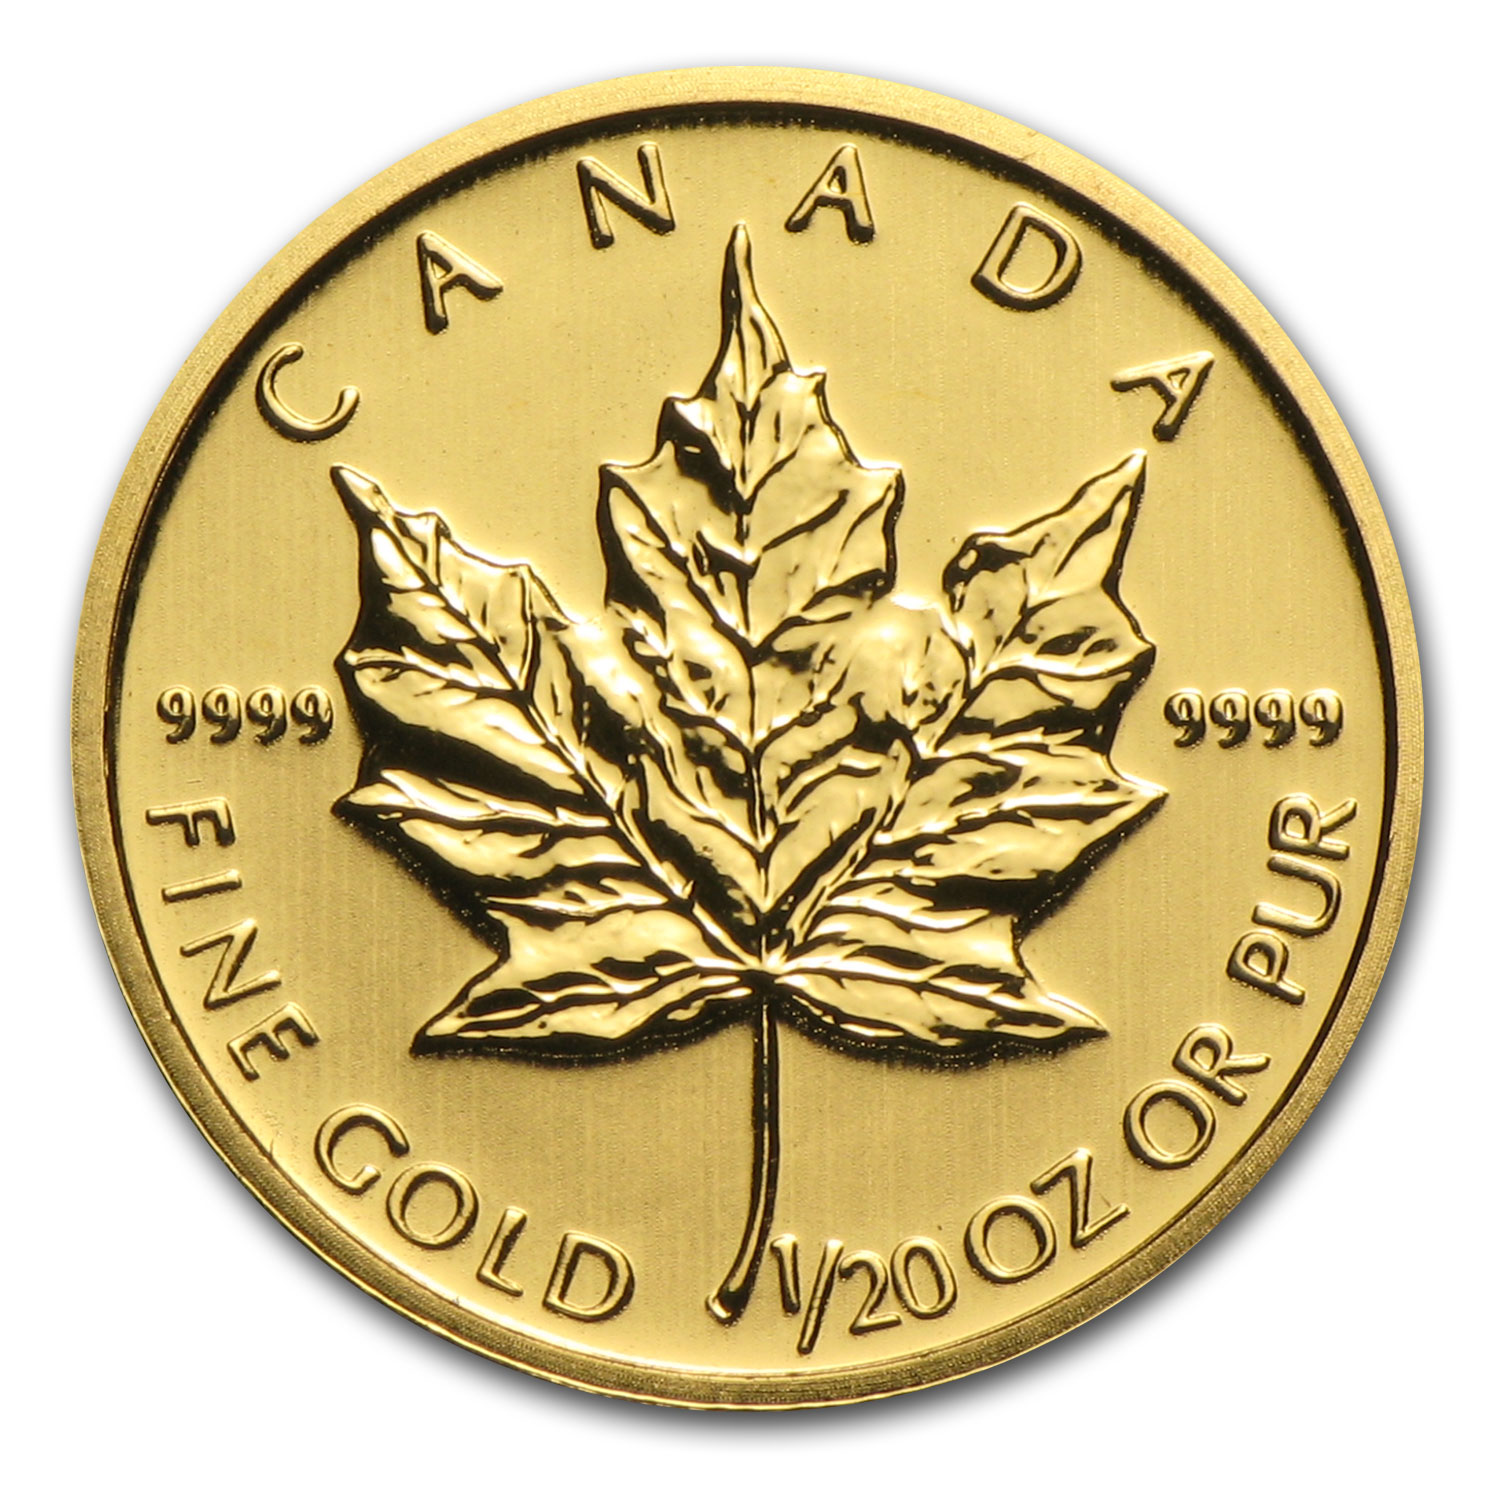 2014 1/20 oz Gold Canadian Maple Leaf